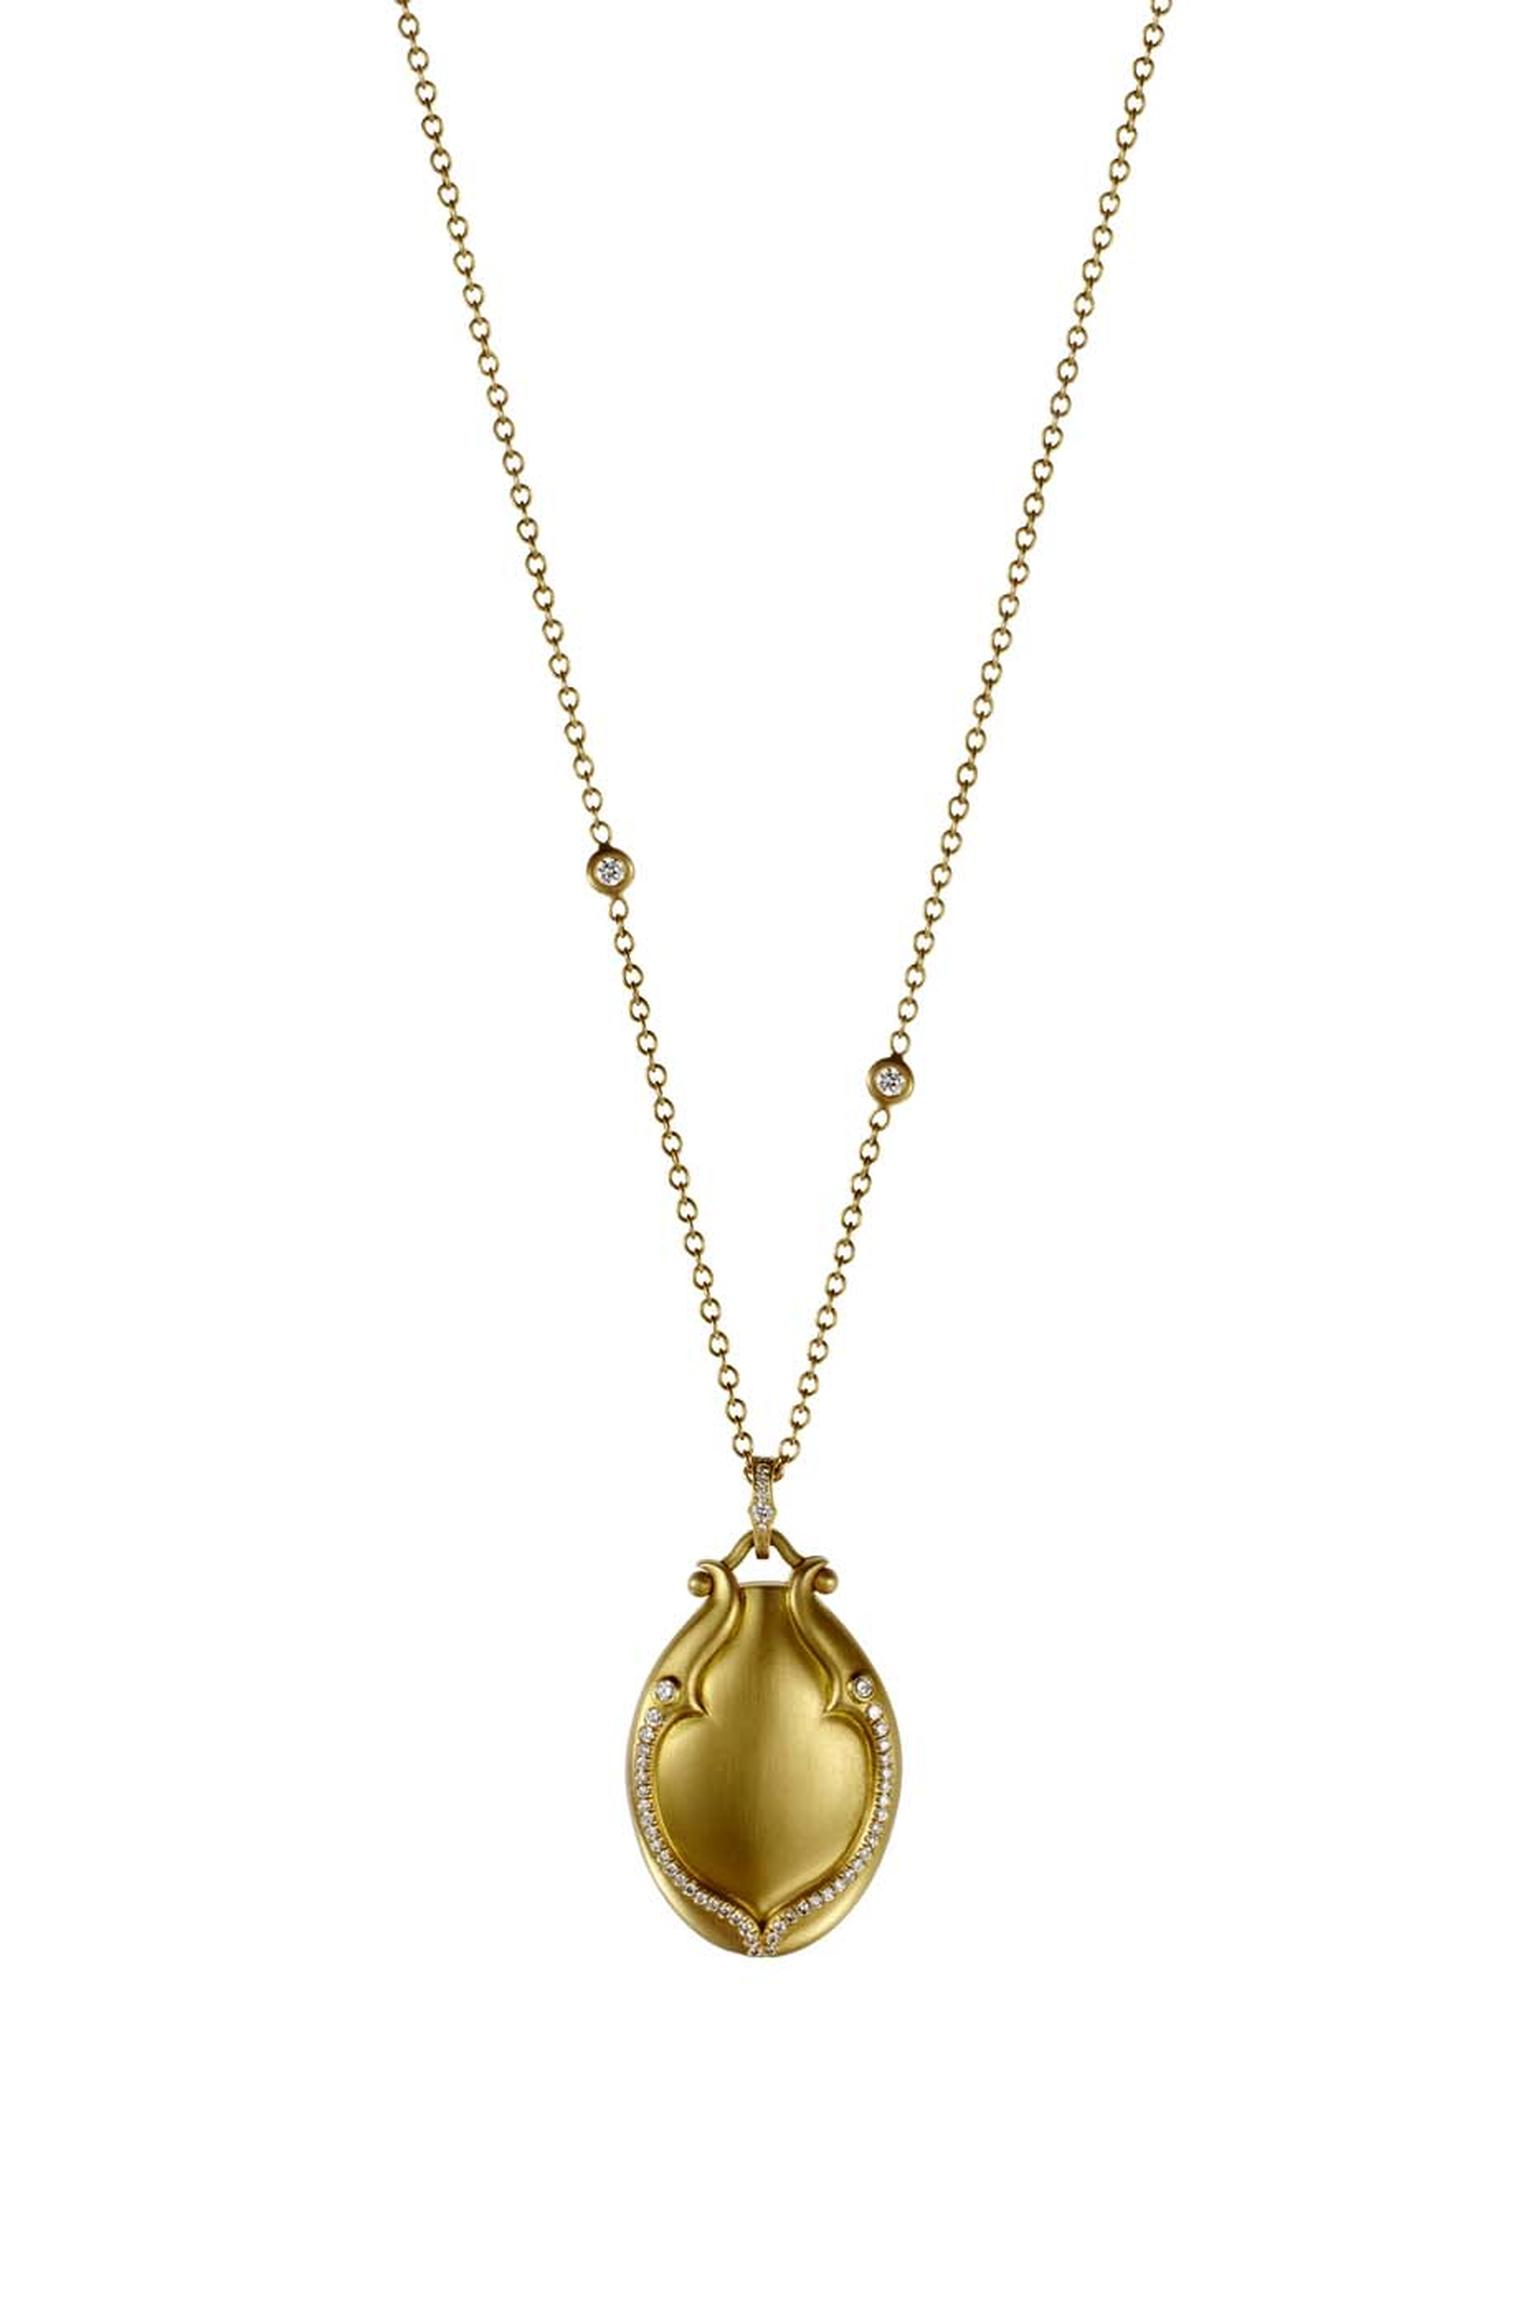 Anahita Lovebird brushed-gold locket with pavé white diamonds and a bezel-set chain ($9,000).